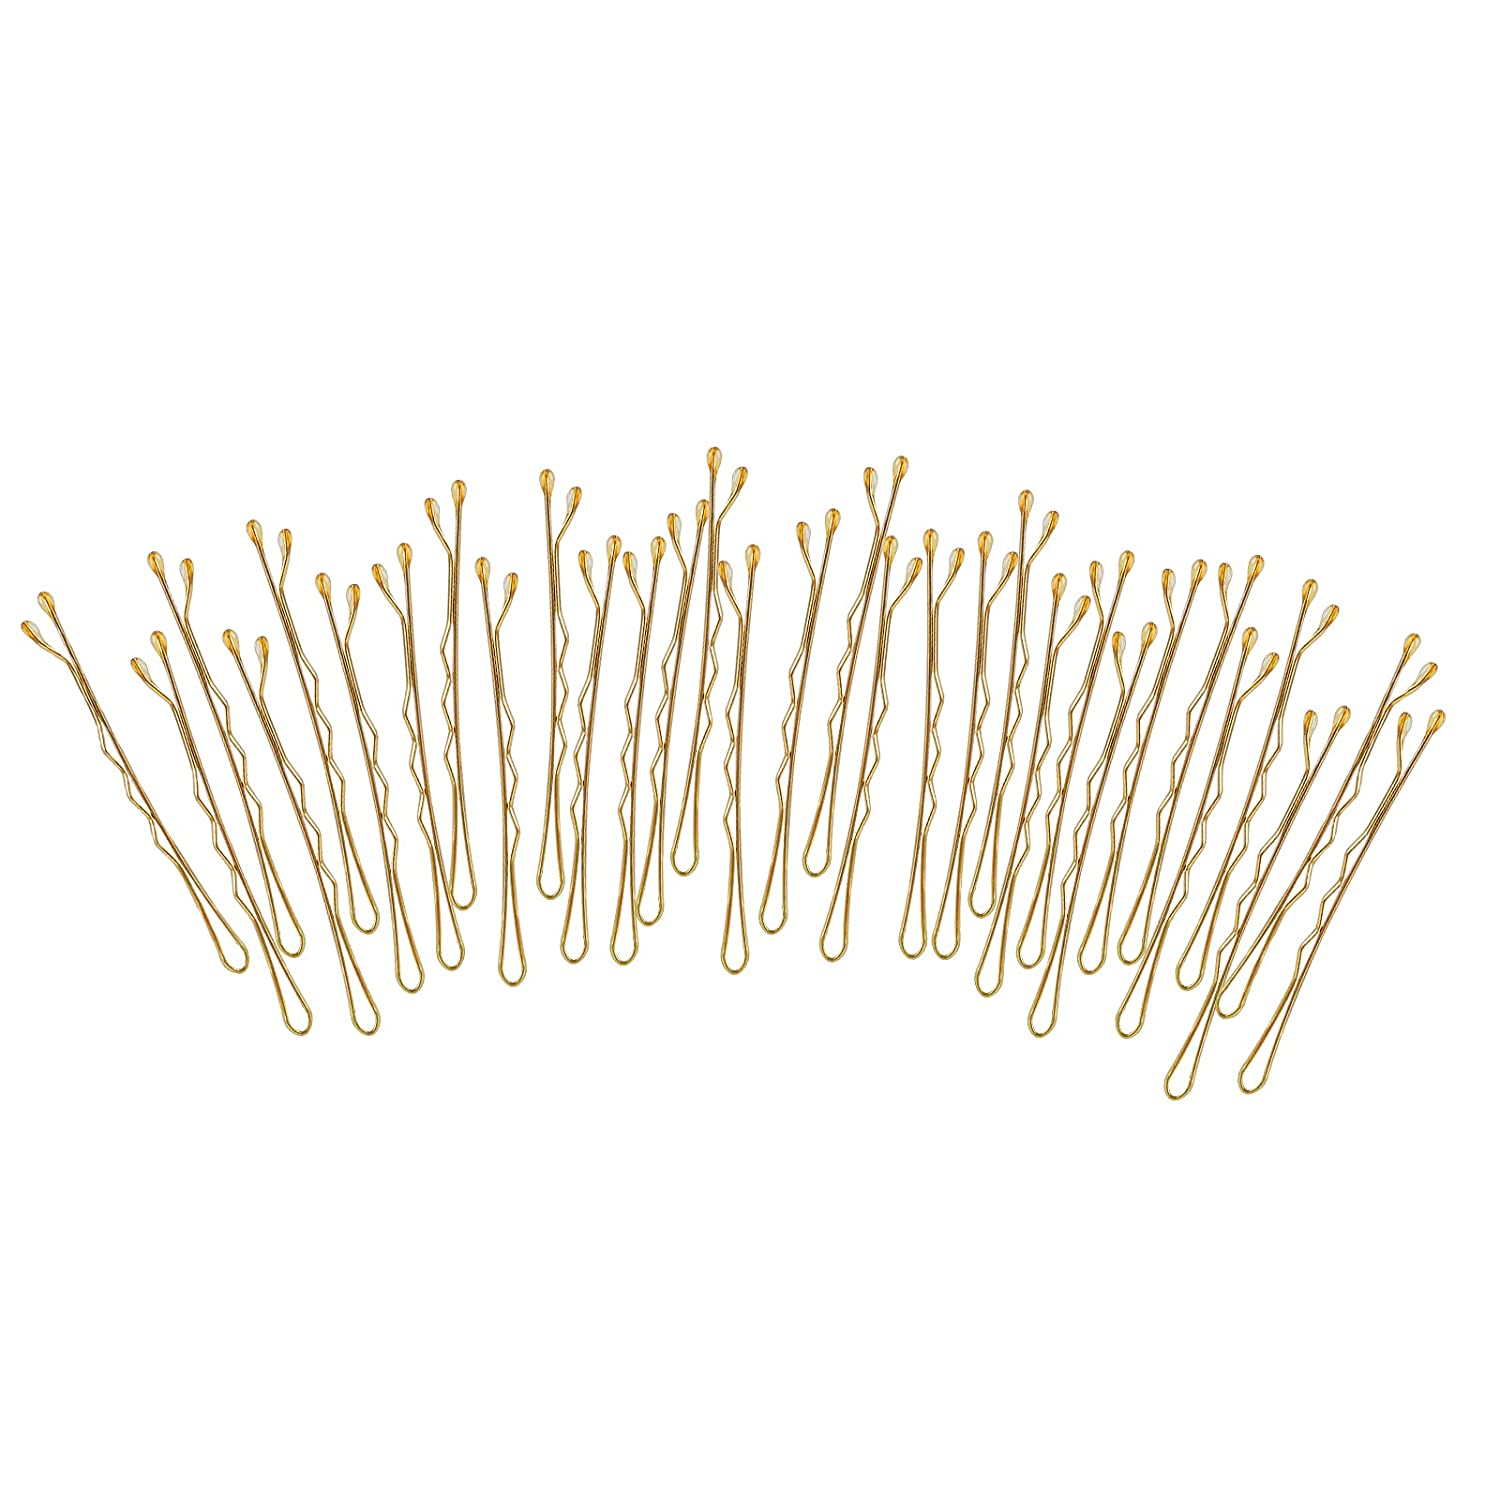 Buy Laicky Bobby Pins, 20Count Blonde Hair Pins Hairpins with Box ...